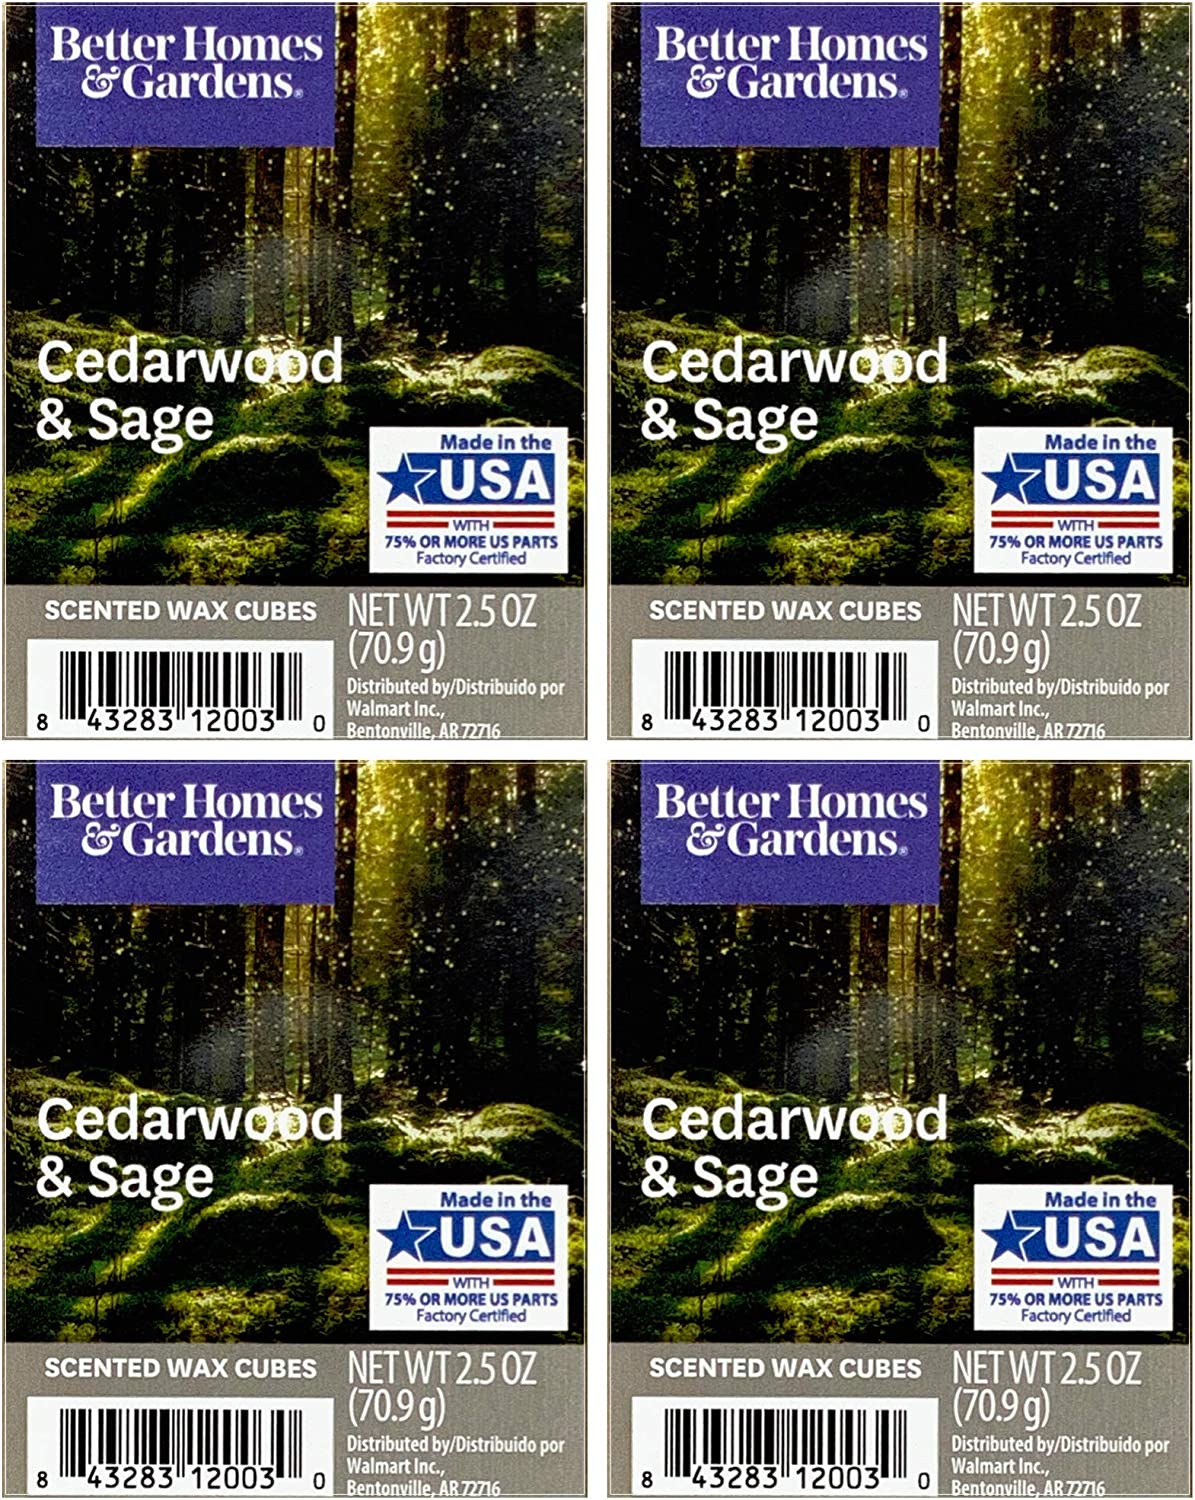 Better Homes and Gardens Cedarwood and Sage Wax Cubes 4-Pack